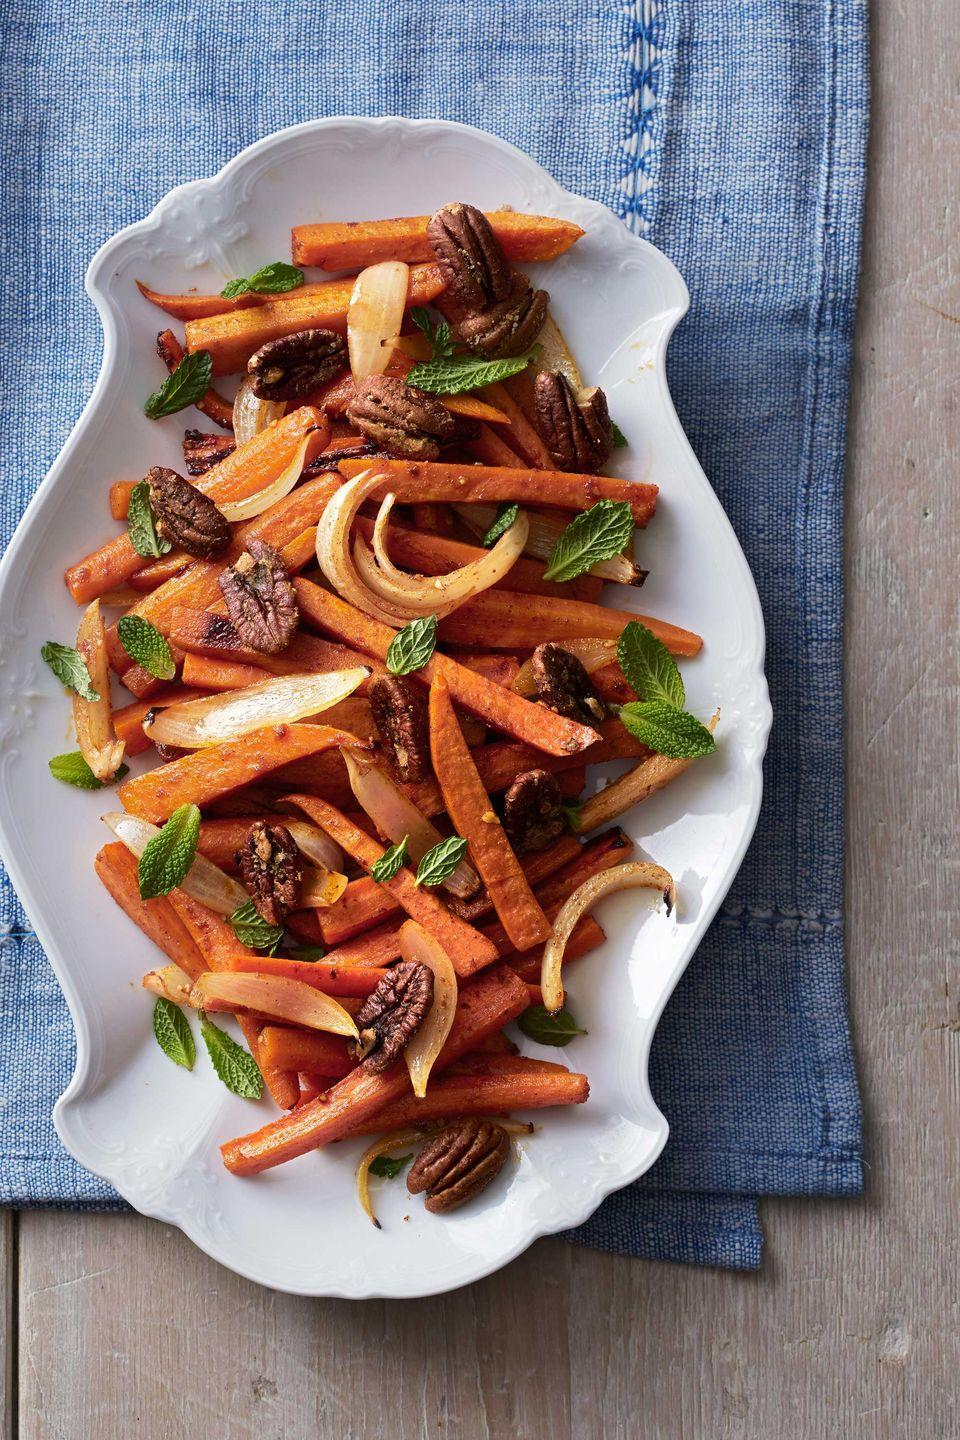 "<p>Fresh mint brings a bright note to hearty root vegetables garnished with spiced pecans. </p><p><strong>Tip:</strong> Coated in orange juice and spices—in addition to the usual oil—will make this sweet potato, carrot, and onion mix pop with flavor.</p><p><strong><a href=""https://www.countryliving.com/food-drinks/recipes/a5079/roasted-sweet-potatoes-carrots-recipe-clx1113/"" rel=""nofollow noopener"" target=""_blank"" data-ylk=""slk:Get the recipe"" class=""link rapid-noclick-resp"">Get the recipe</a>.</strong></p>"